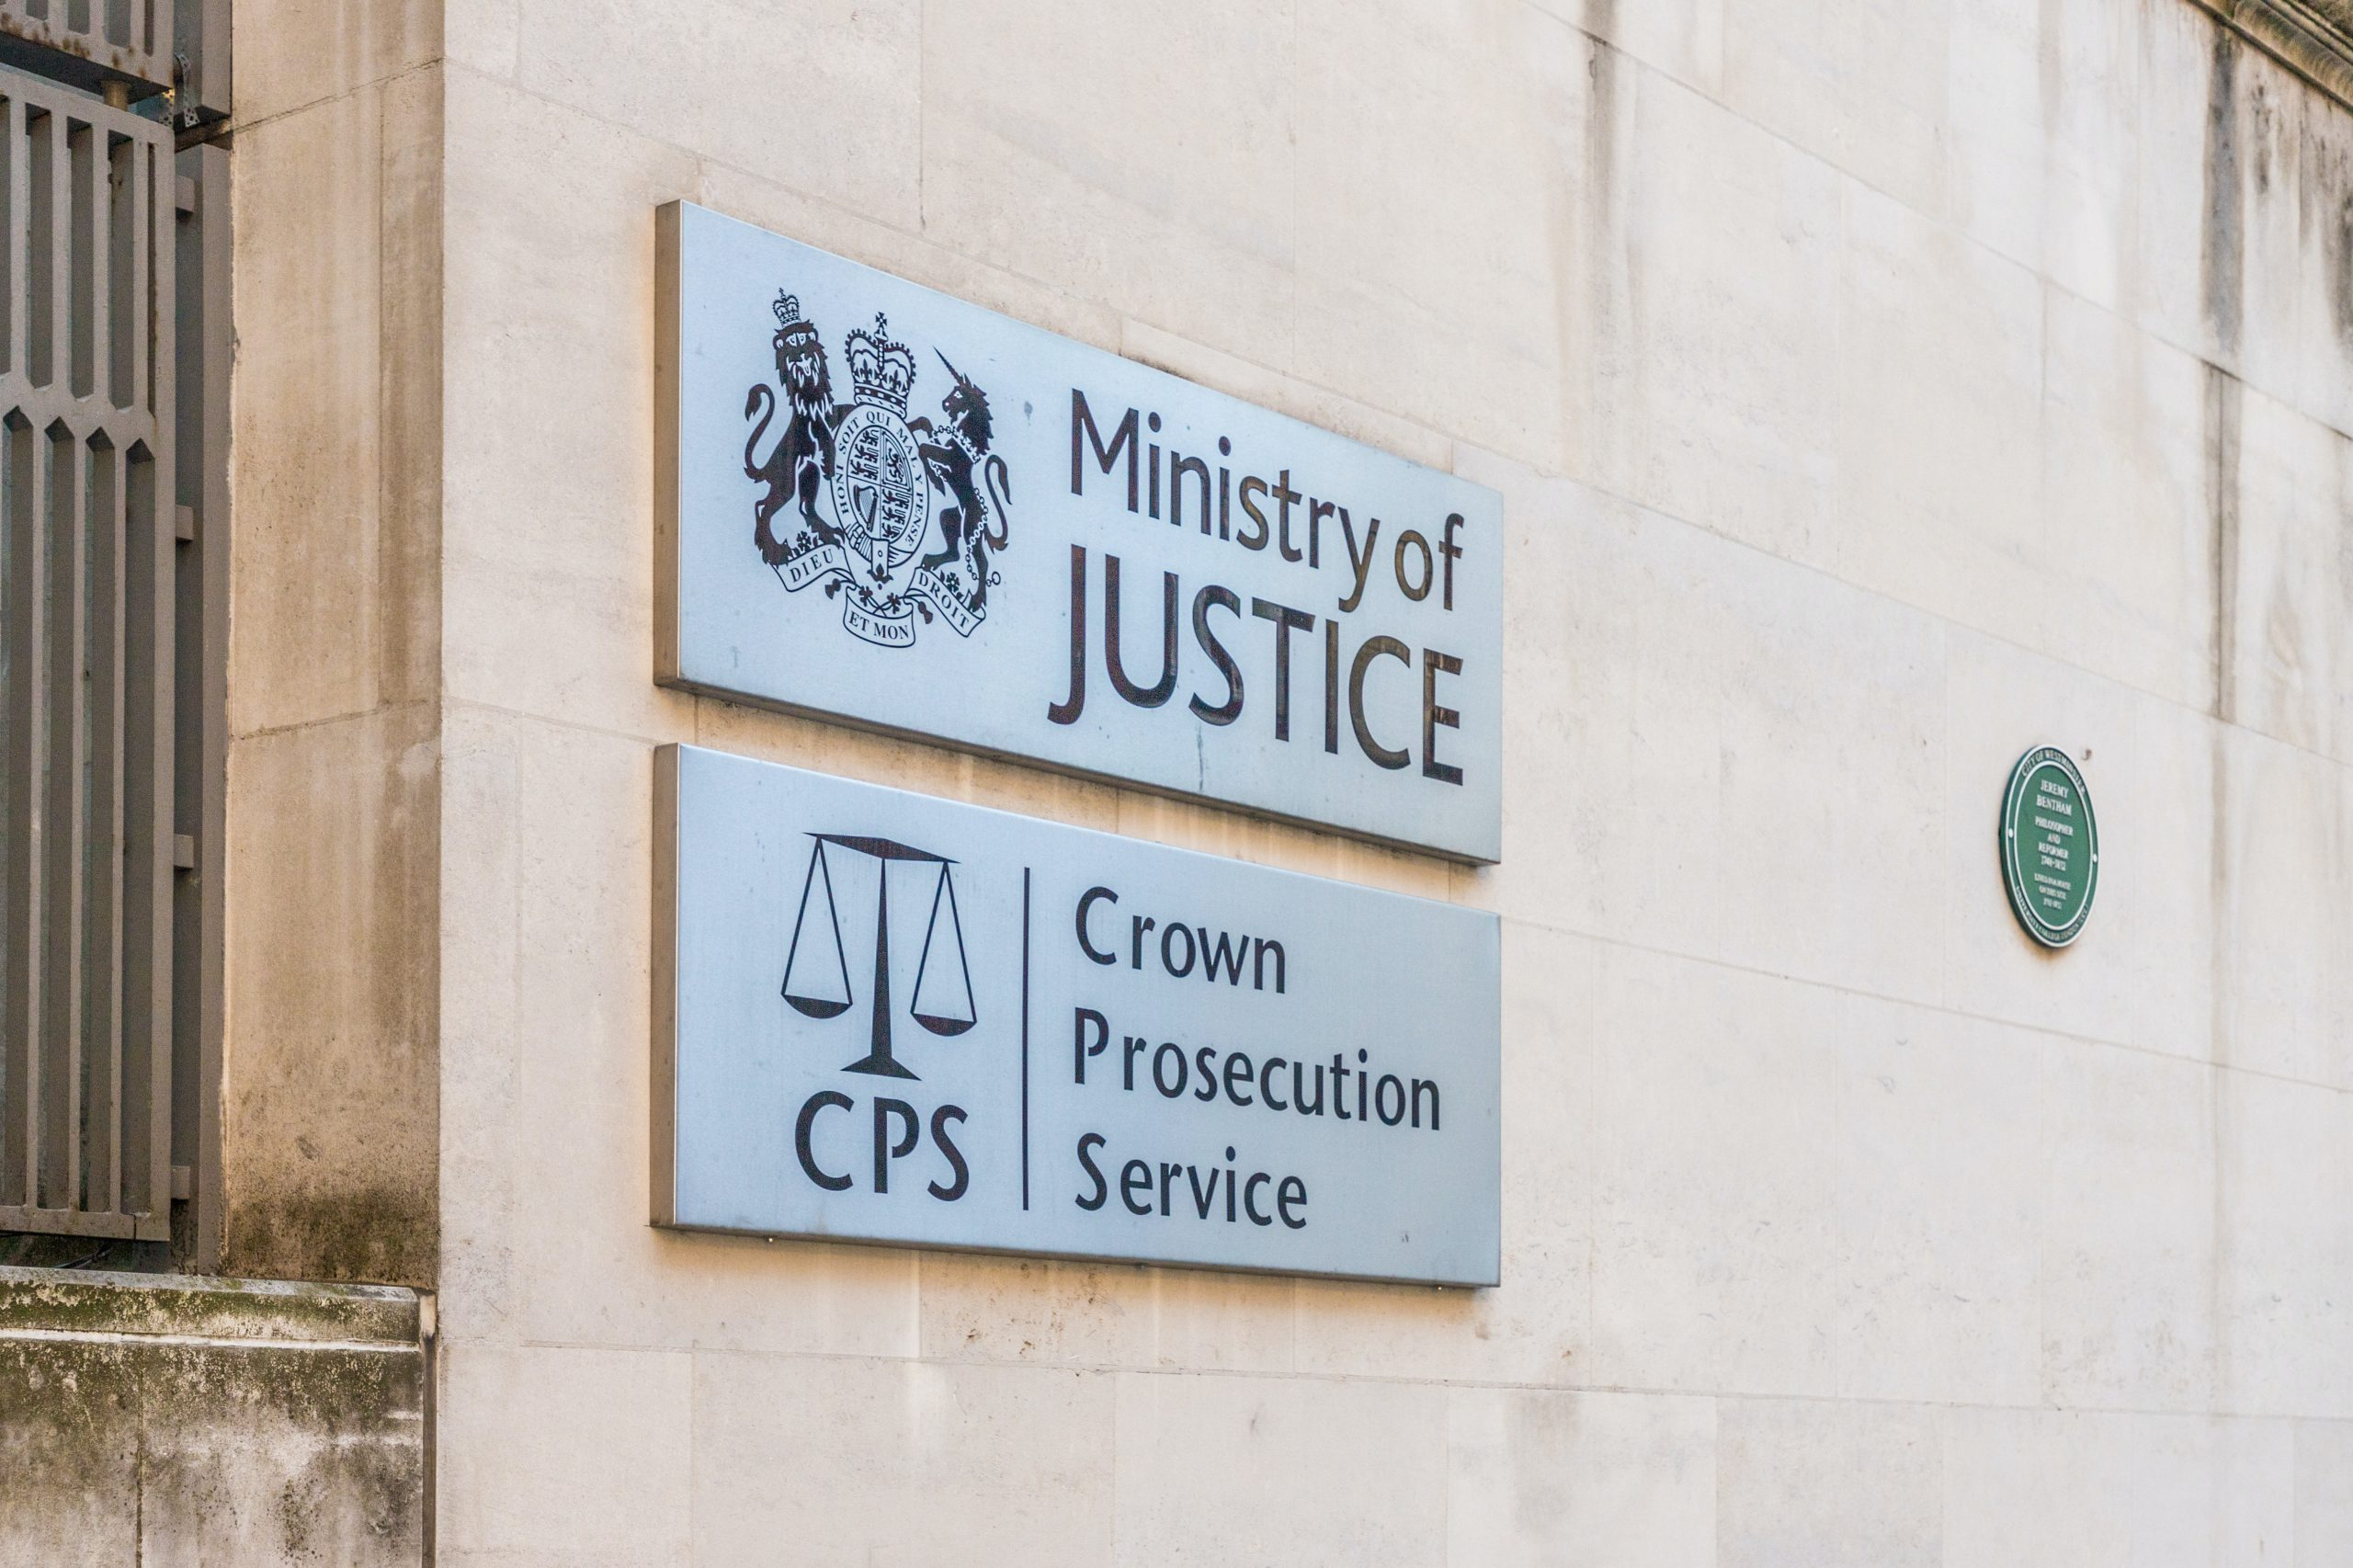 Ministry of Justice sign and Crown Prosecution Service sign on a building